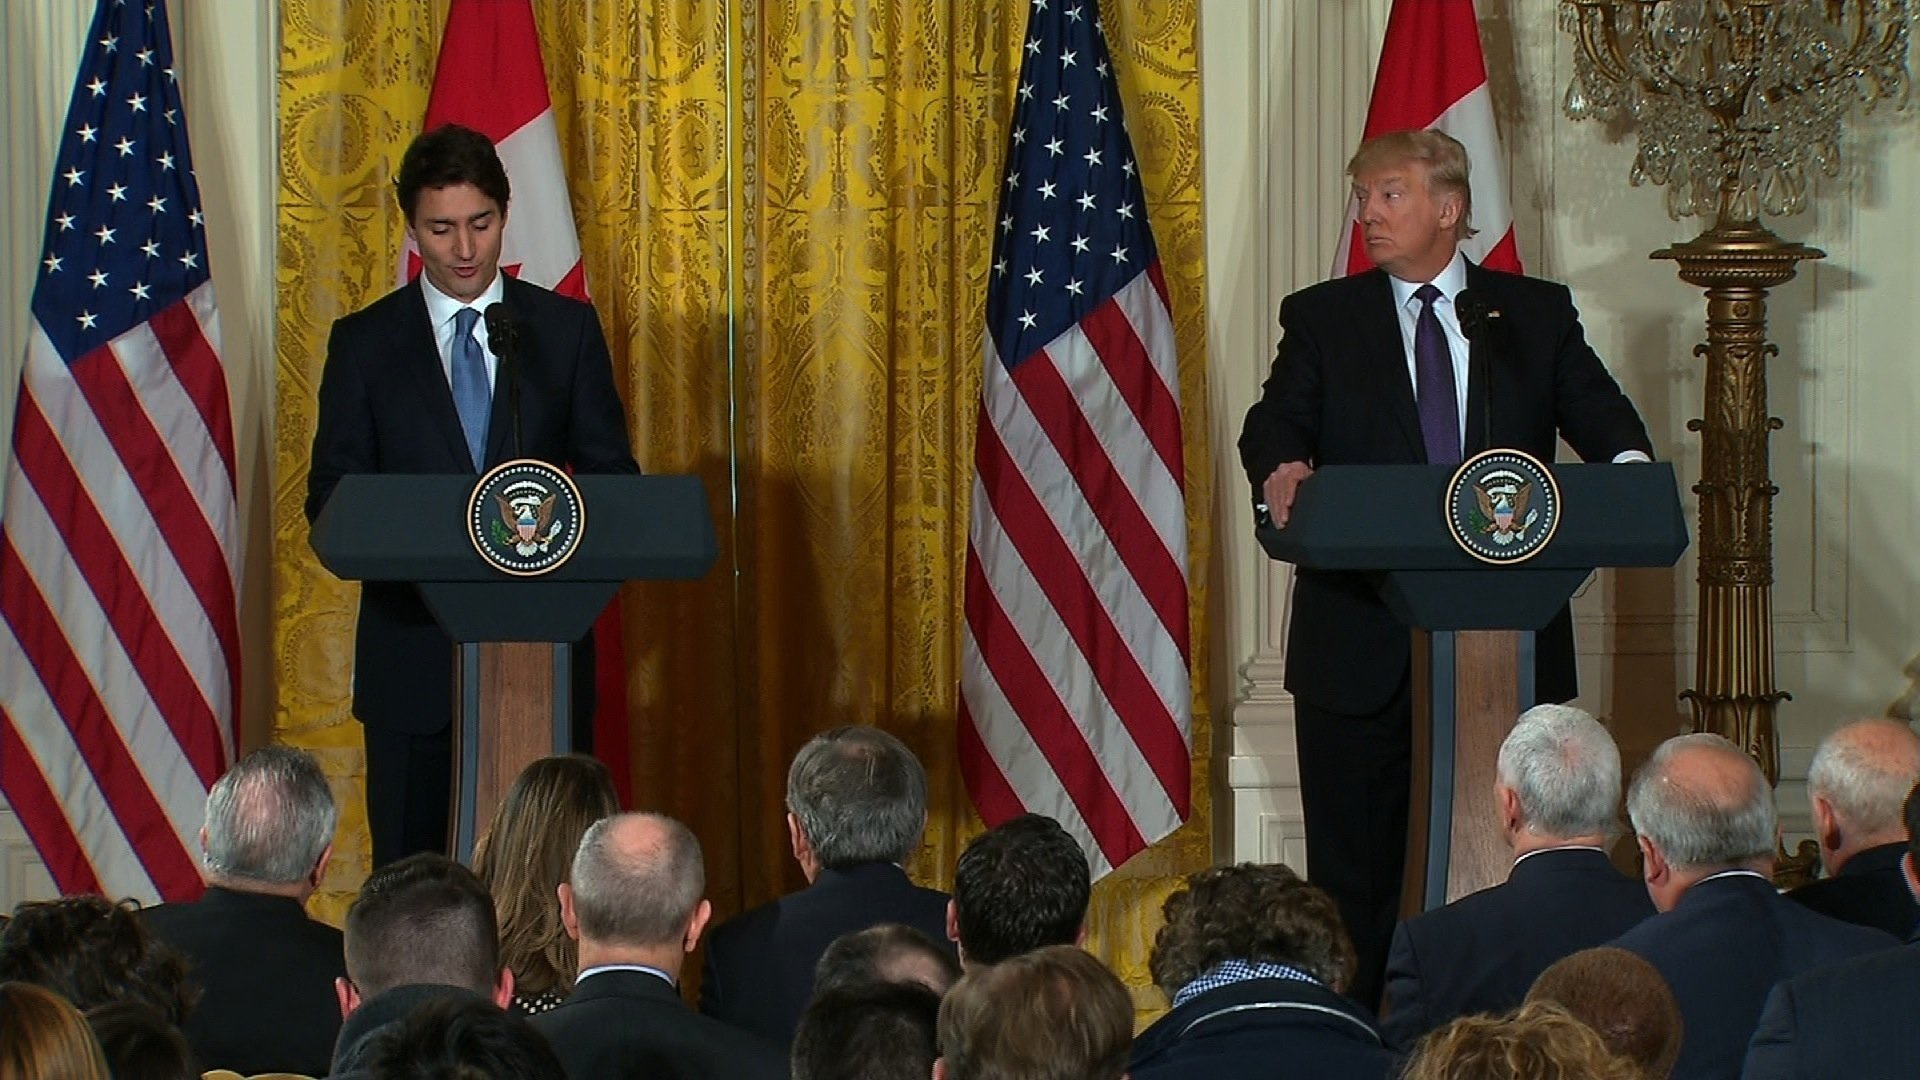 When asked by Trudeau why Trump cited national security threats while emplacing tariffs on Canada, Trump said